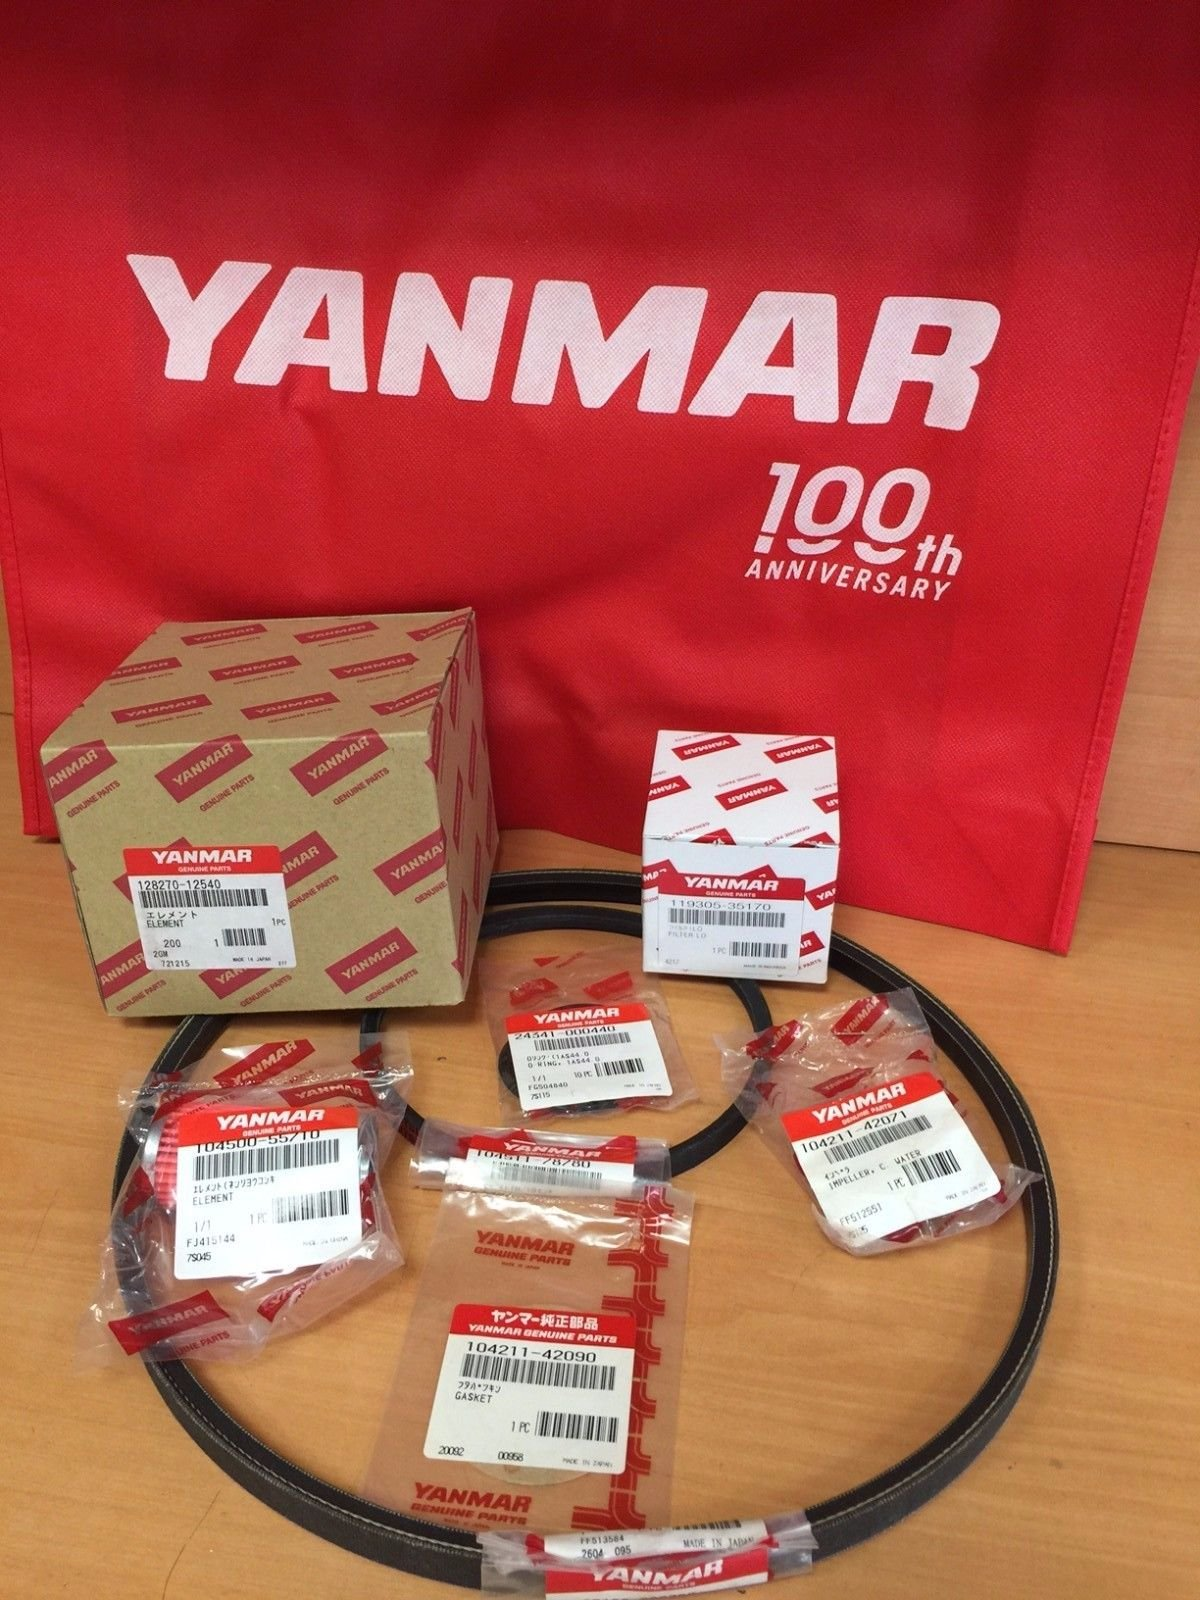 Yanmar 2GM20 3GM30 Maintenance Minor Kit 128270-12540 24341-000440 104211-42071 128670-77350 104211-42090 104511-78780 by Yanmar